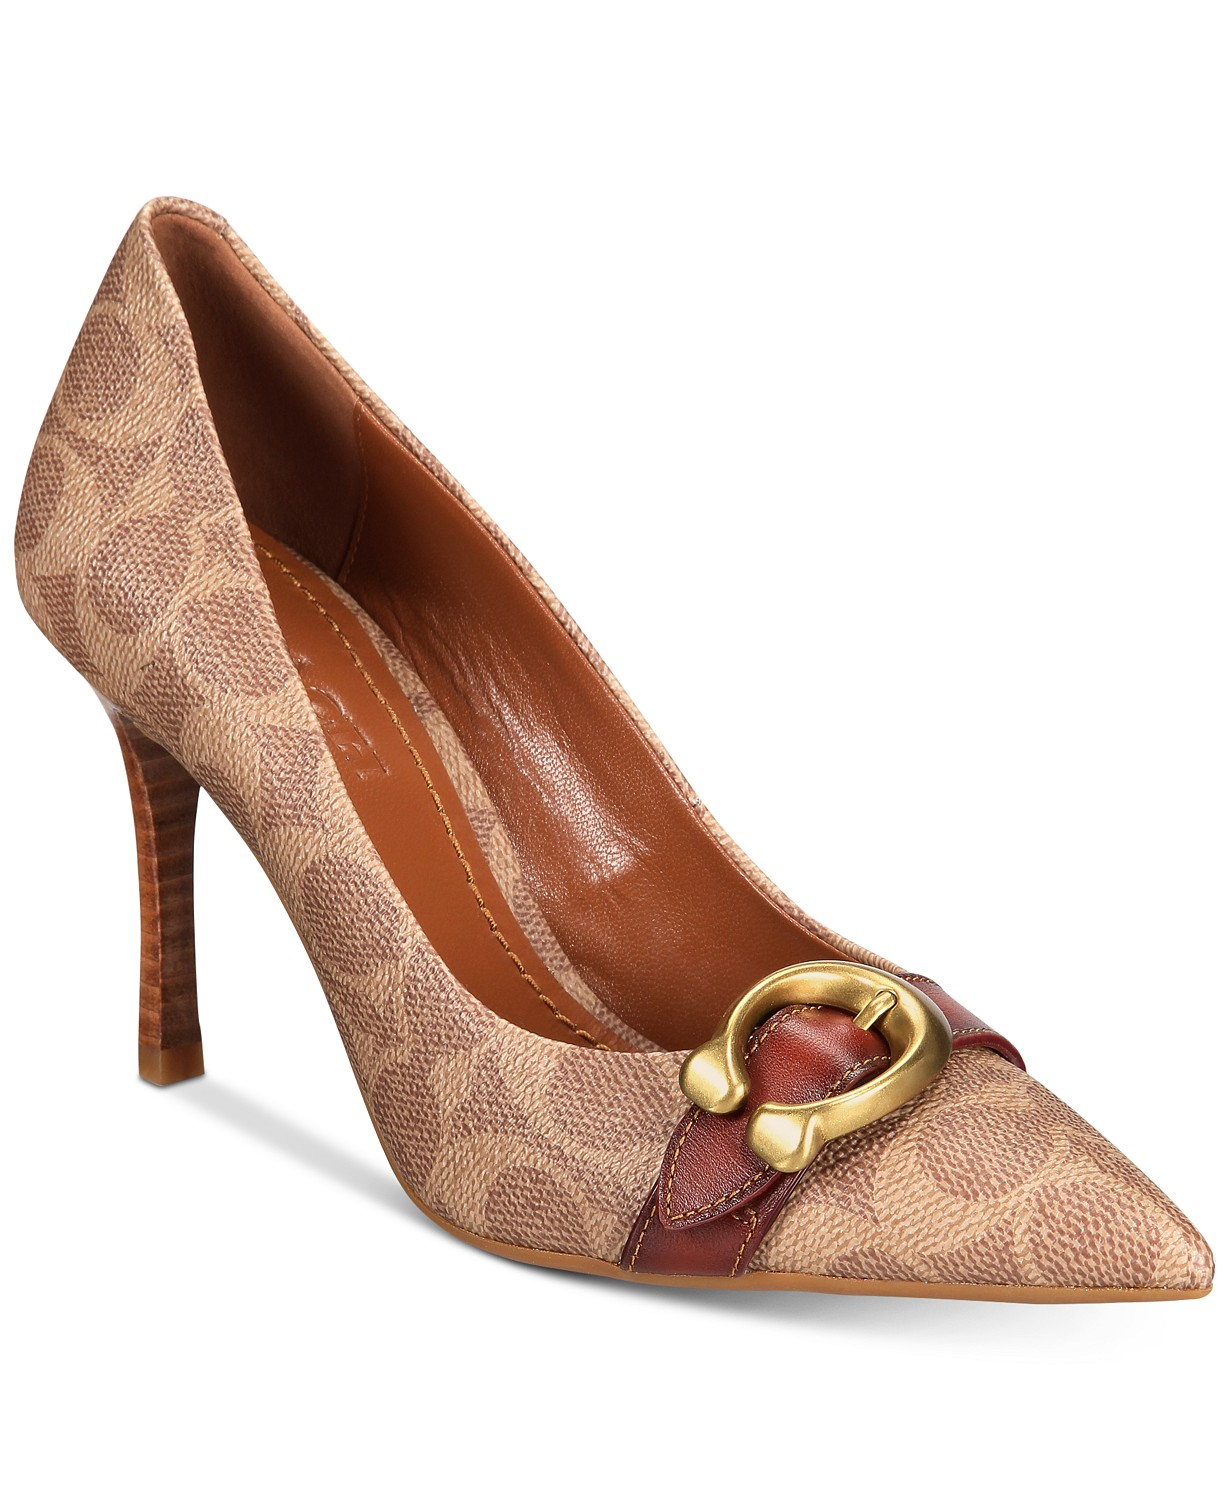 best shoes for small feet women